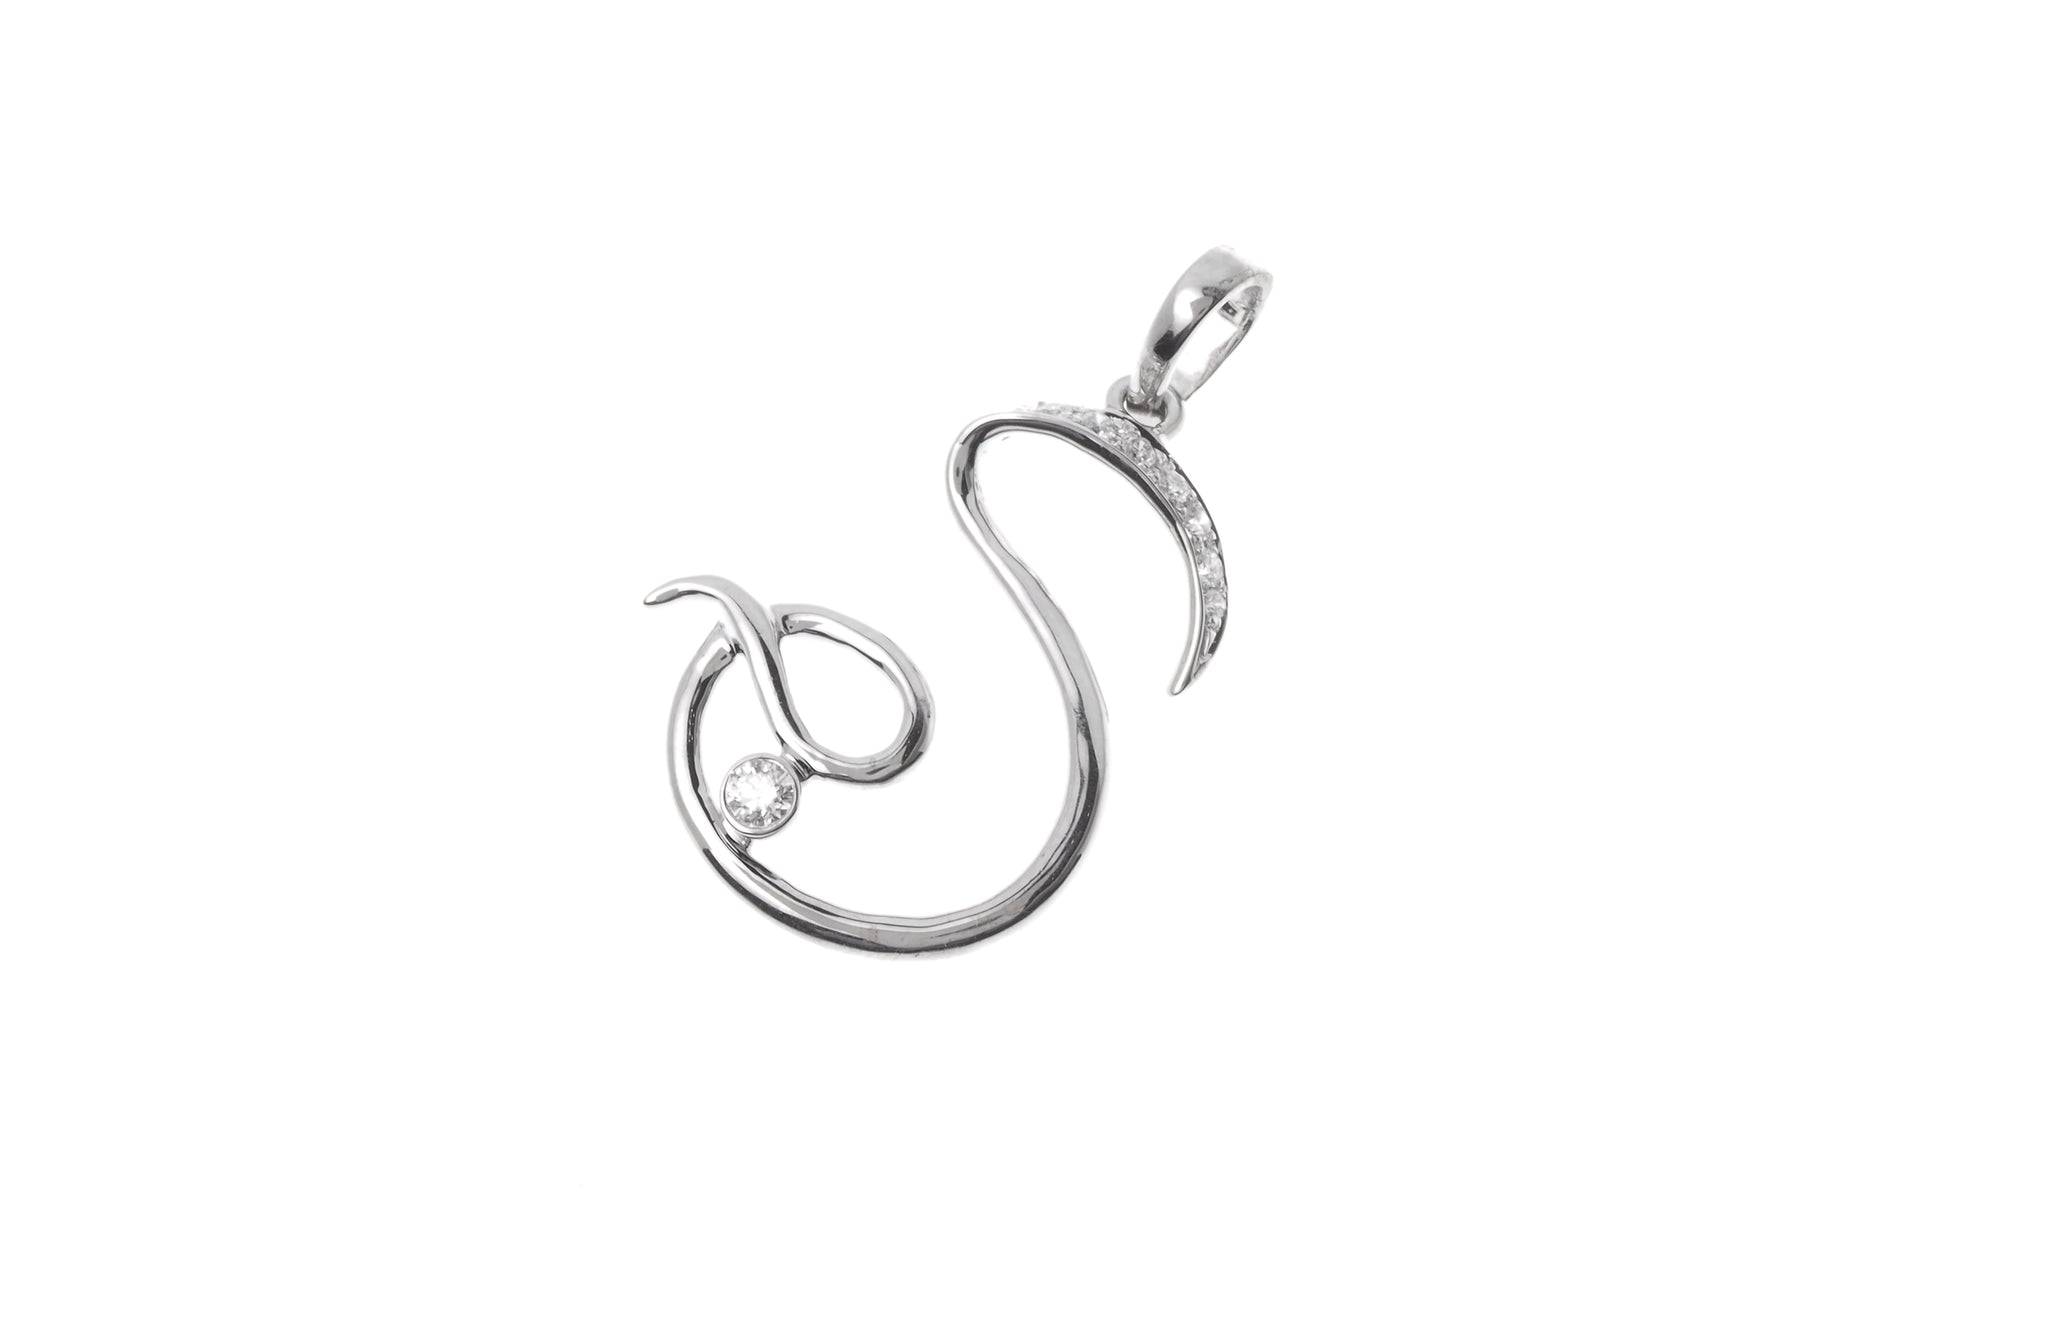 18ct White Gold Diamond 'S' Initial Pendant (MCS2097)